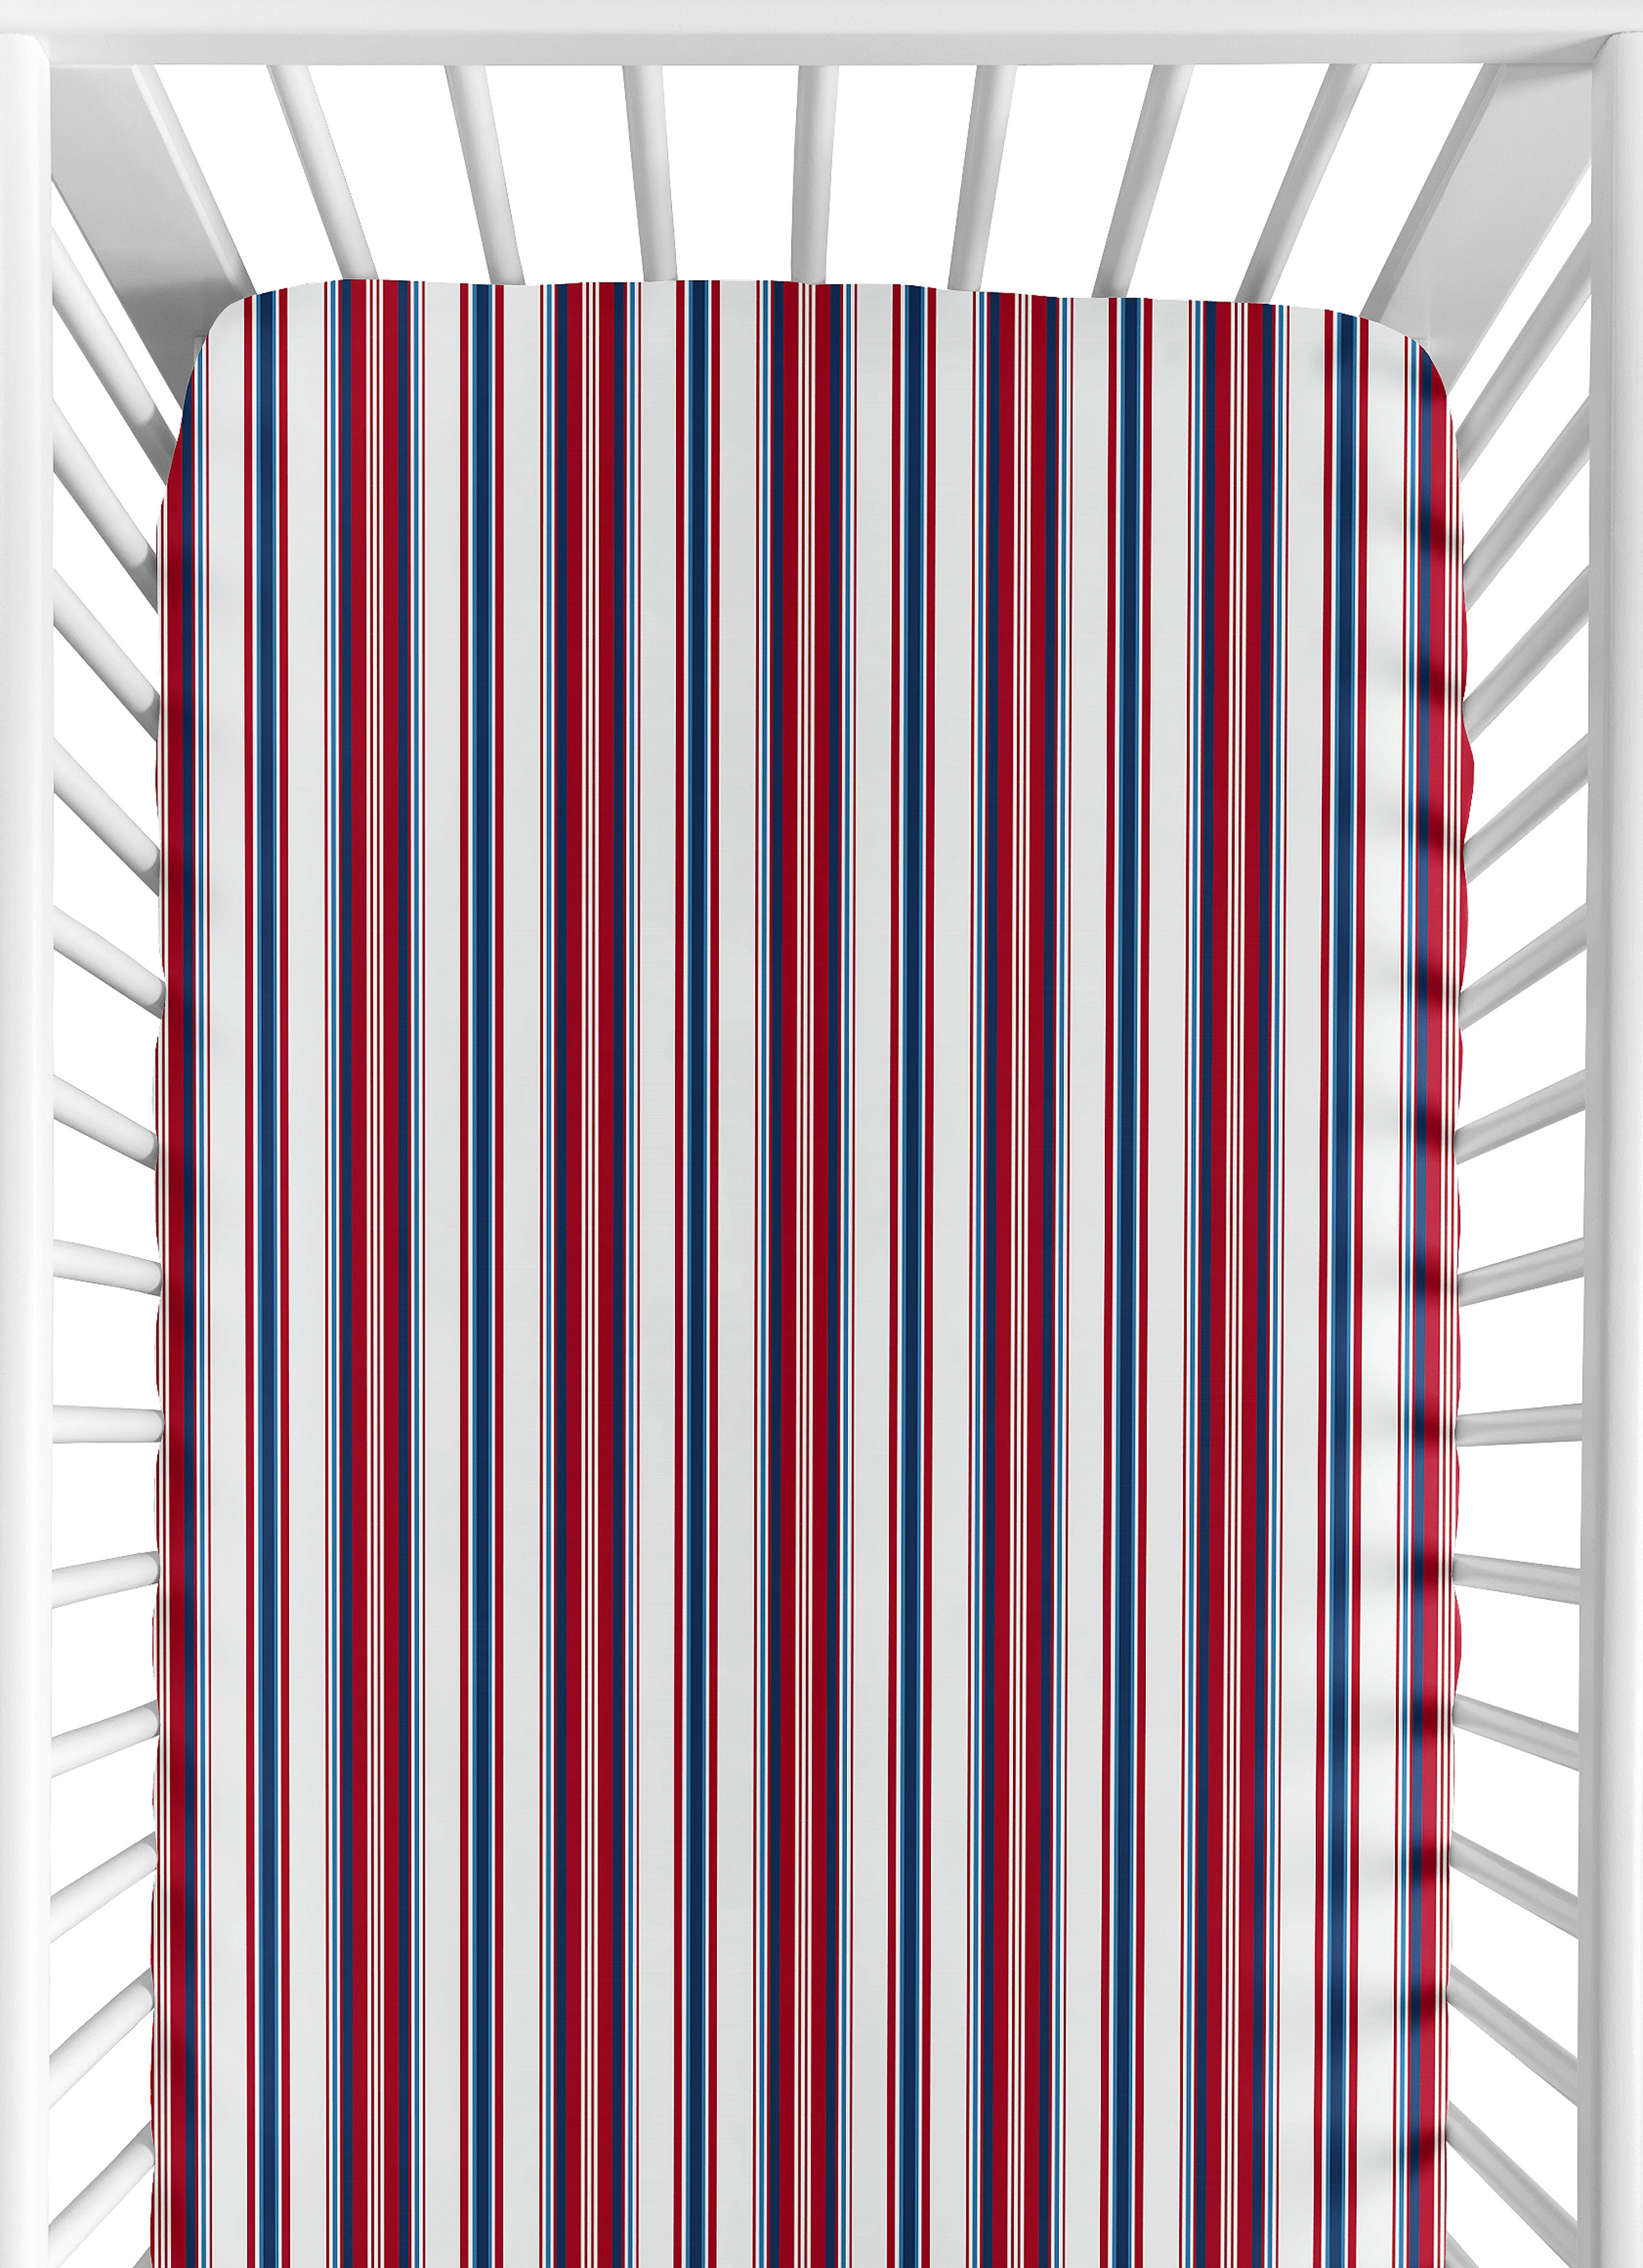 Red striped sheets